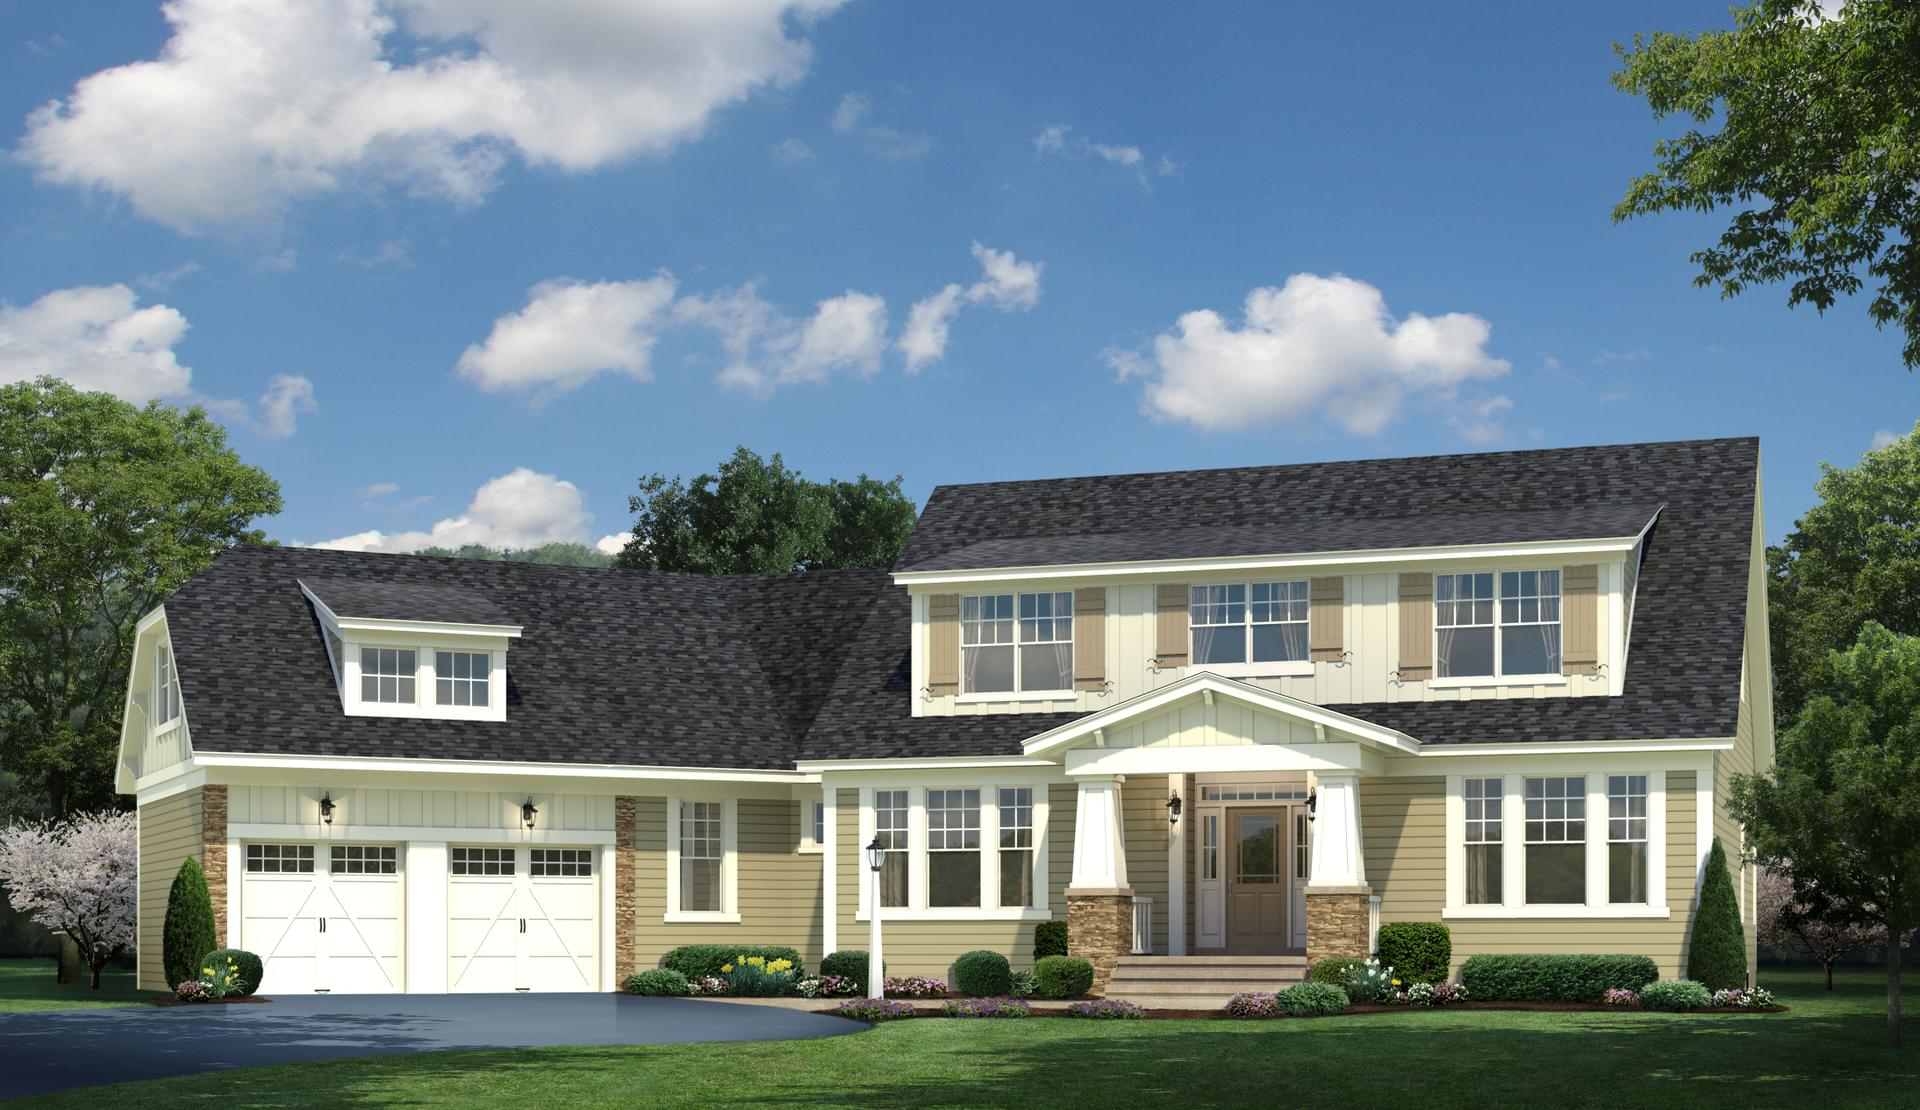 awesome huff homes floor plans 6 riva new home plan the awesome huff homes floor plans 6 riva new home plan the cambridge 1920x1440 jpg